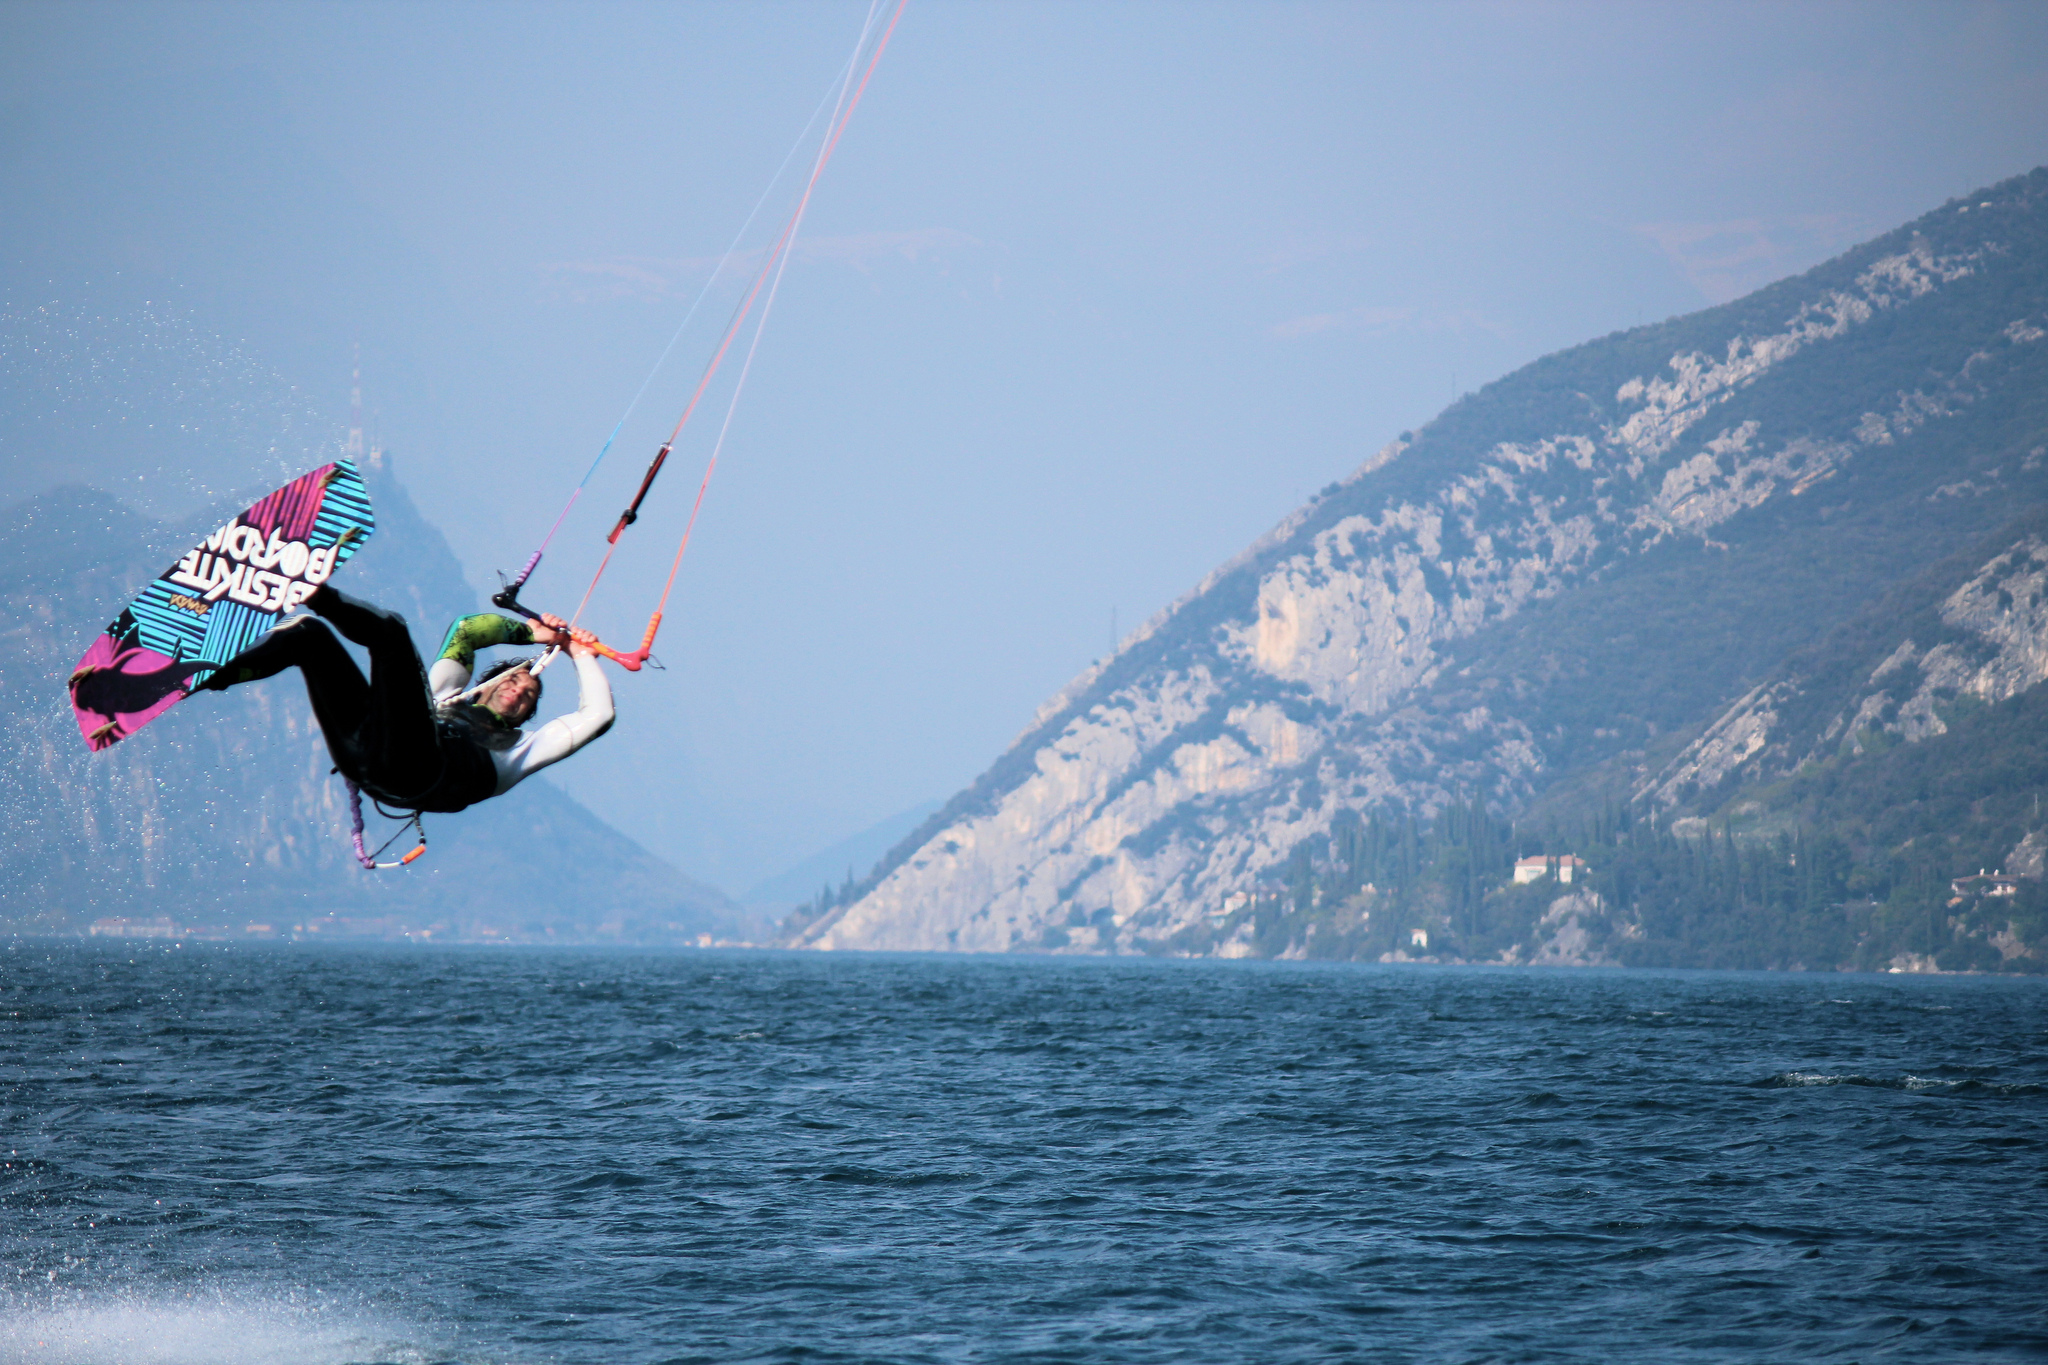 Best kite spots in Europe flickr image courtesy of Arianna cau